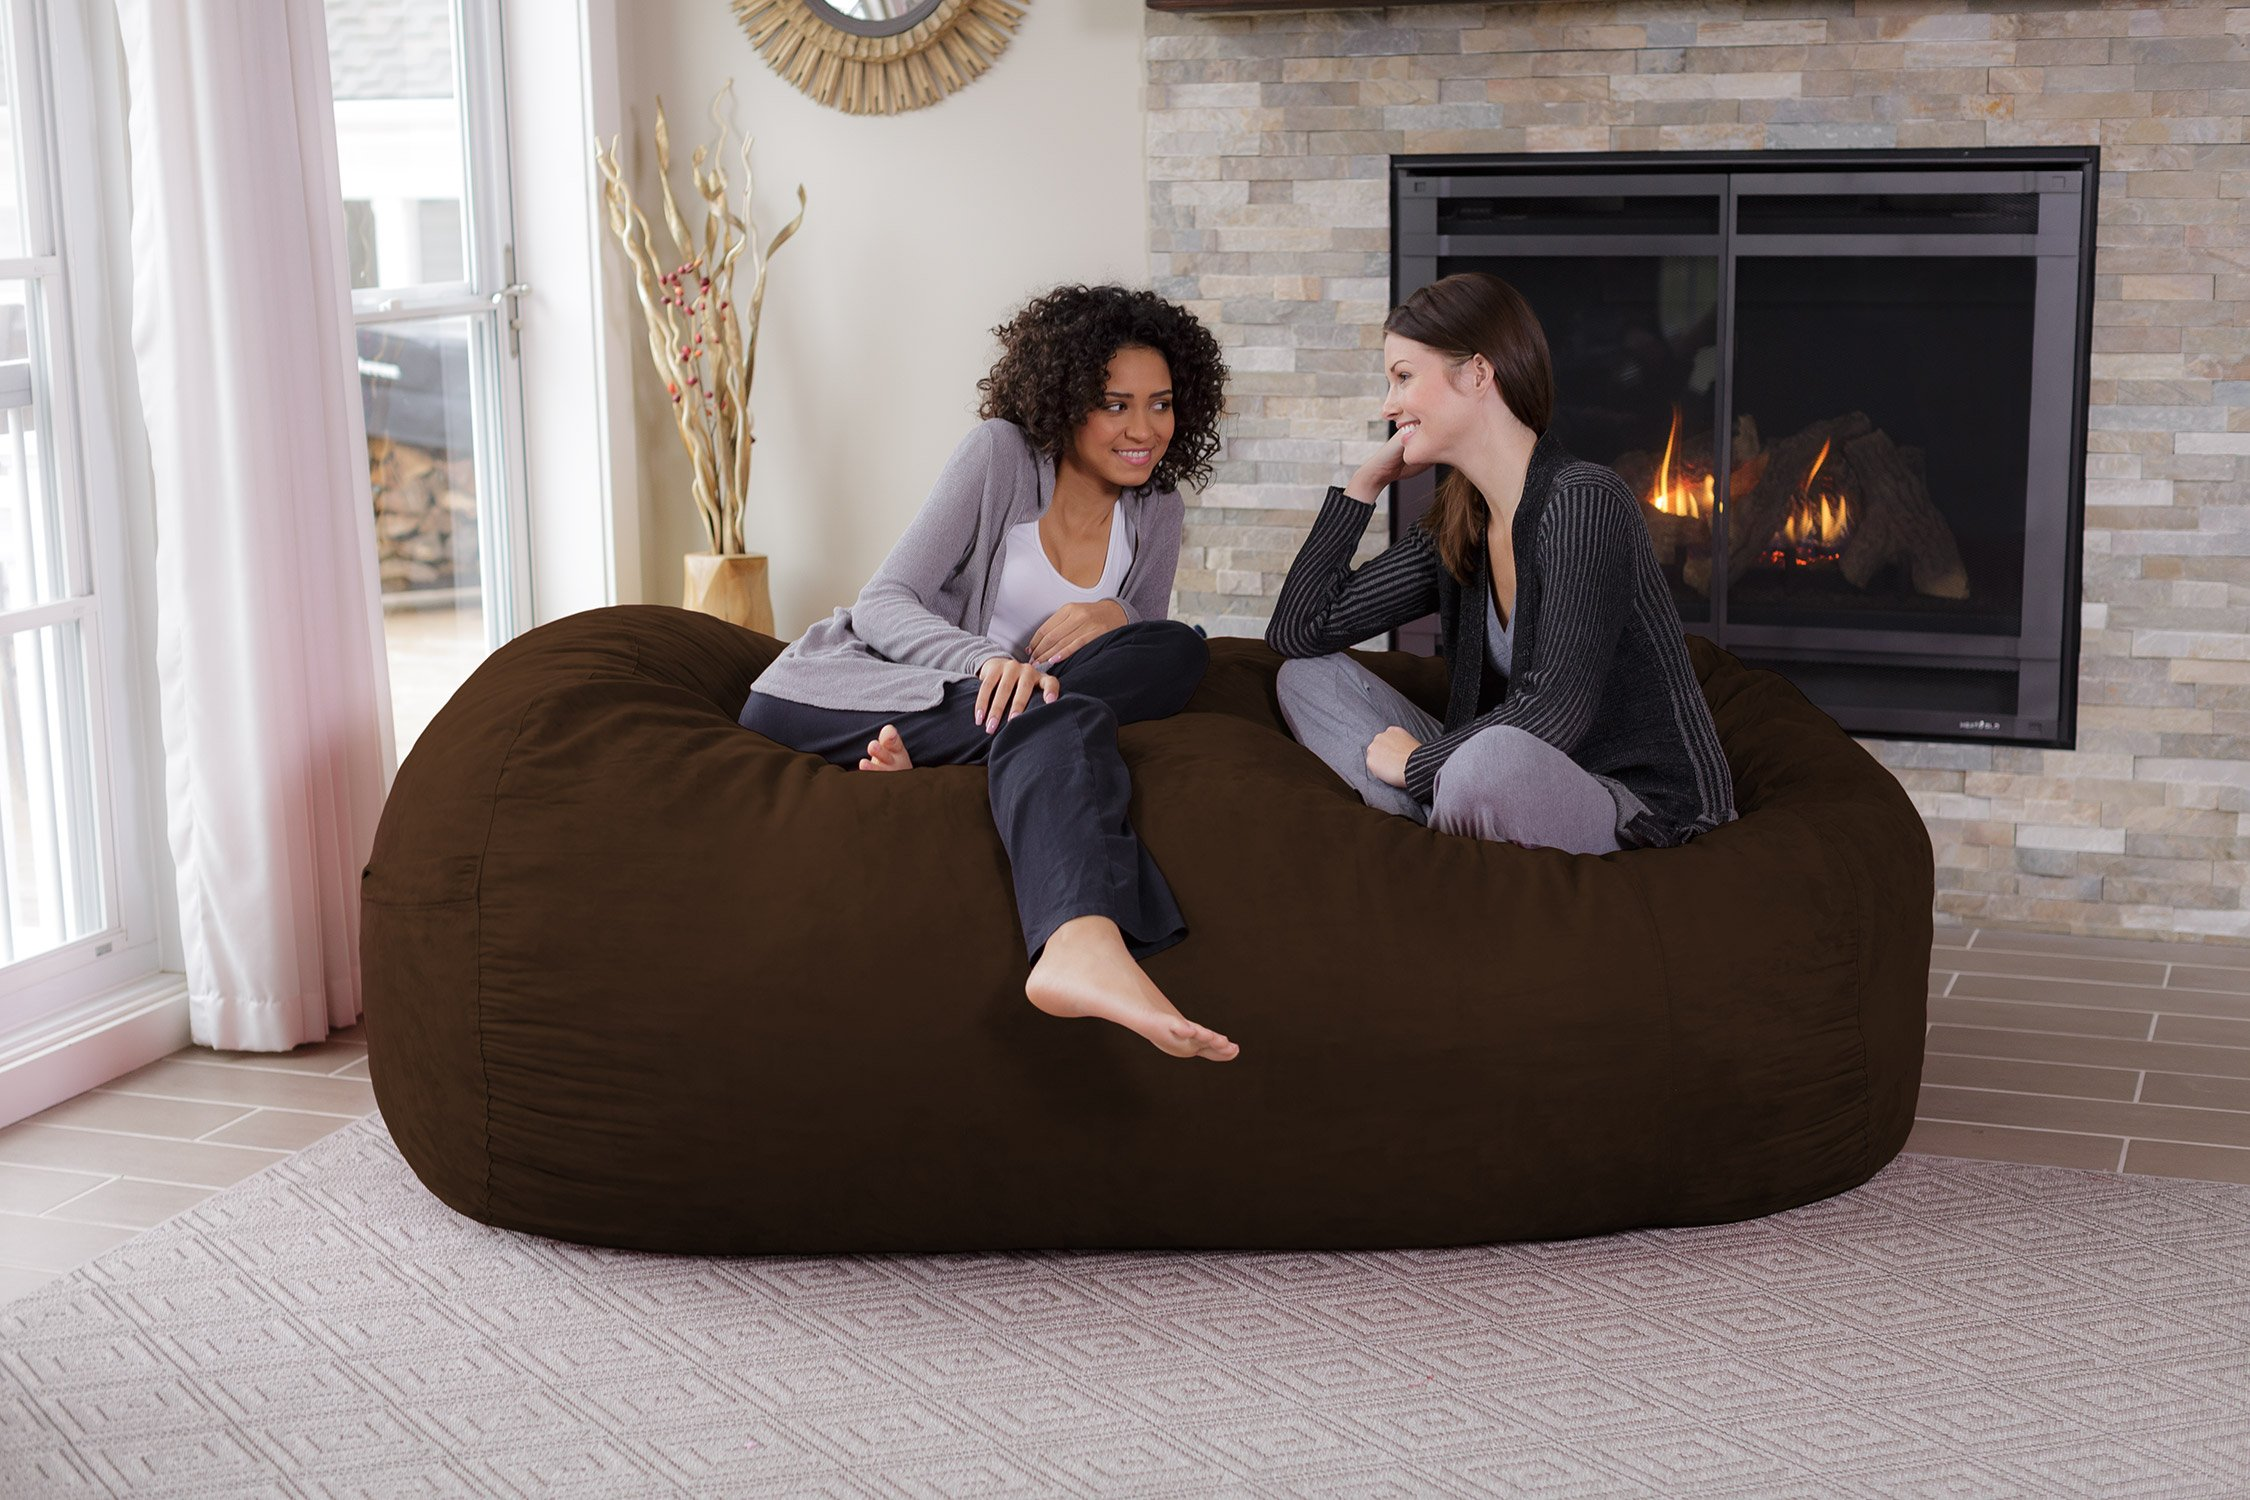 Chill Sack Memory Foam Bean Bag Lounger, 7.5-Feet, Chocolate by Chill Sack (Image #2)